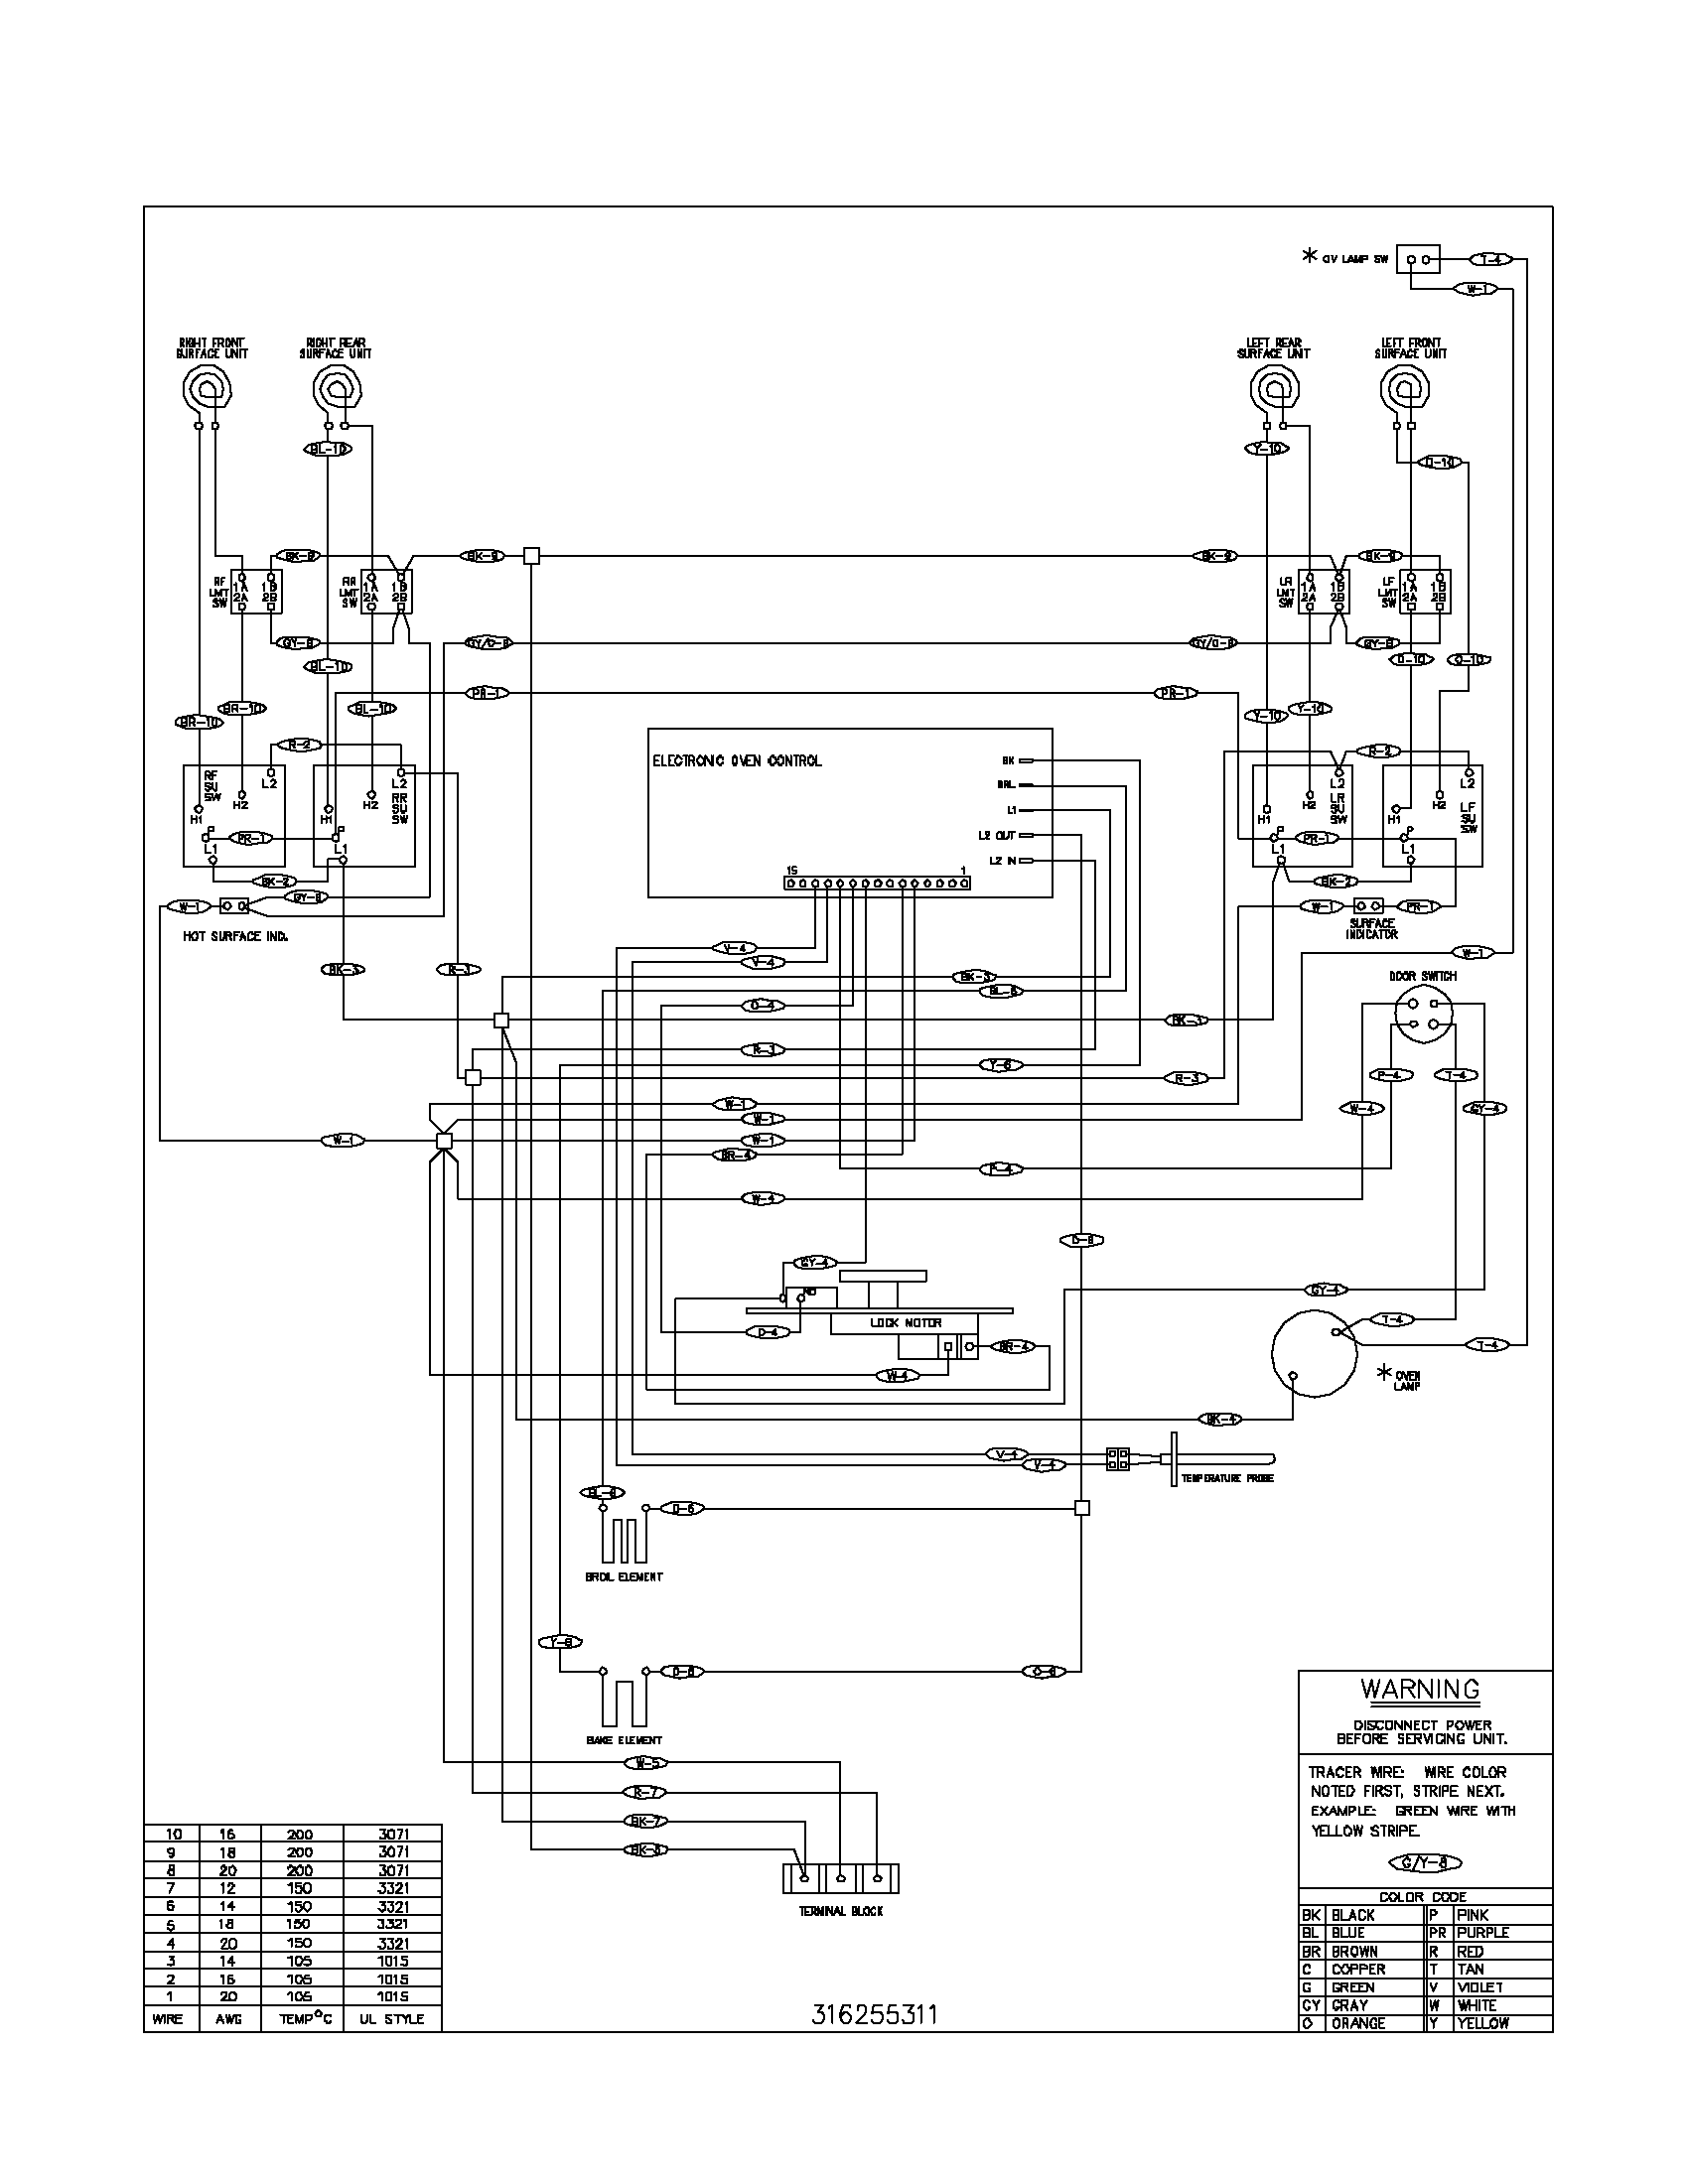 wiring diagram parts cooktop wiring diagram tappan tappan oven model number \u2022 wiring  at reclaimingppi.co